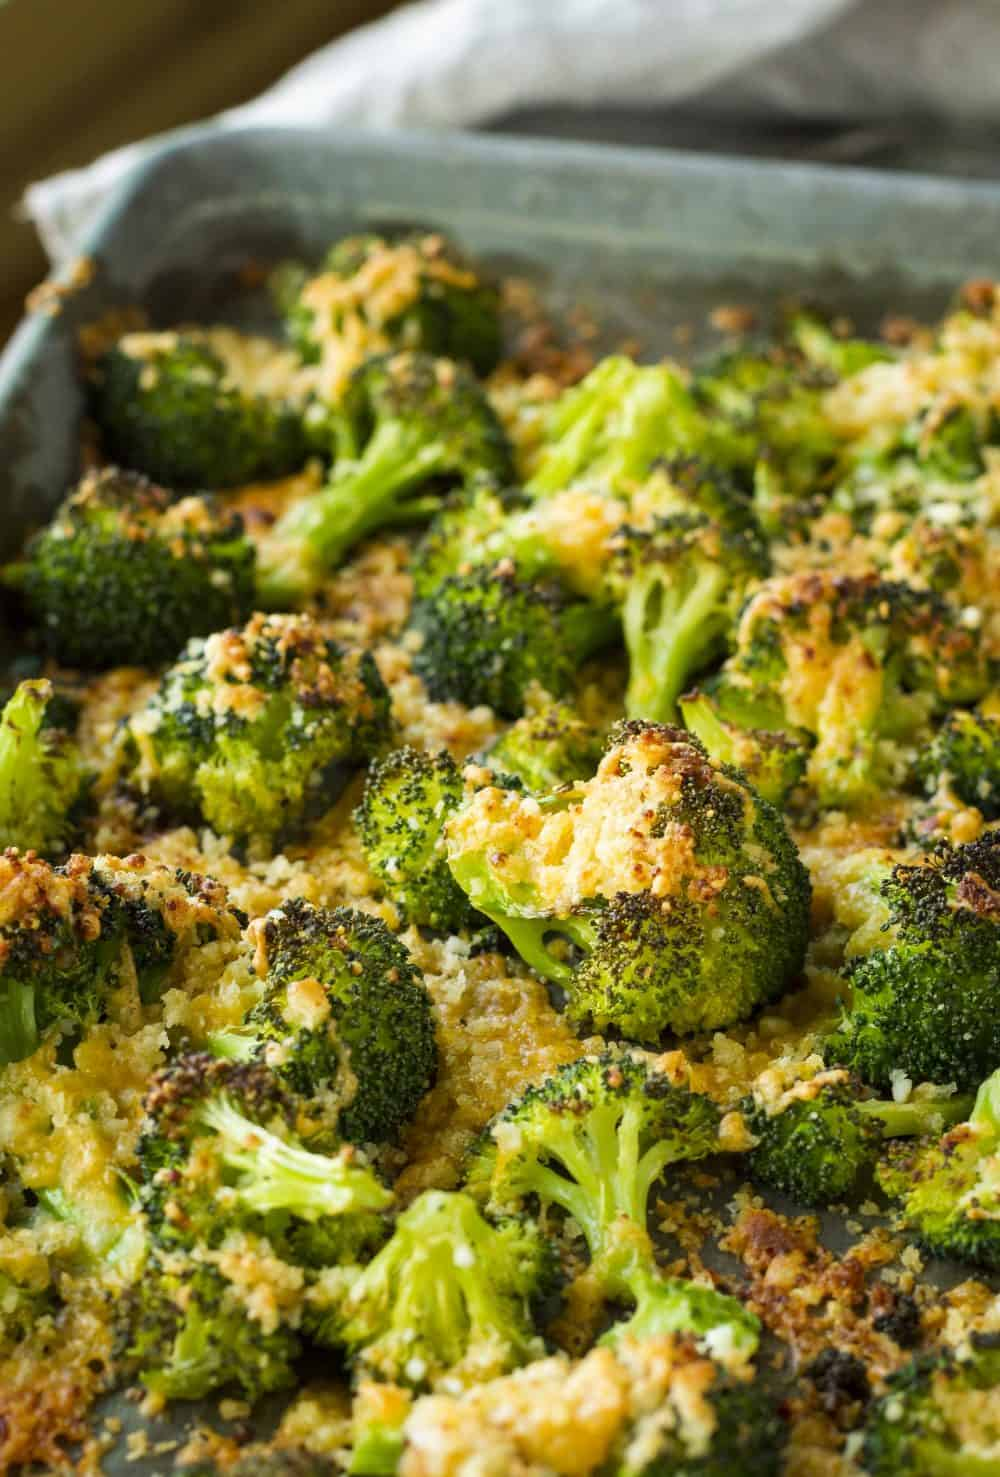 This quick and easy crispy cheesy broccoli gratin features crispy, caramelized broccoli florets topped with a panko cheddar parmesan mixture that's out of this world… Have it on your dinner table in under 20 minutes!